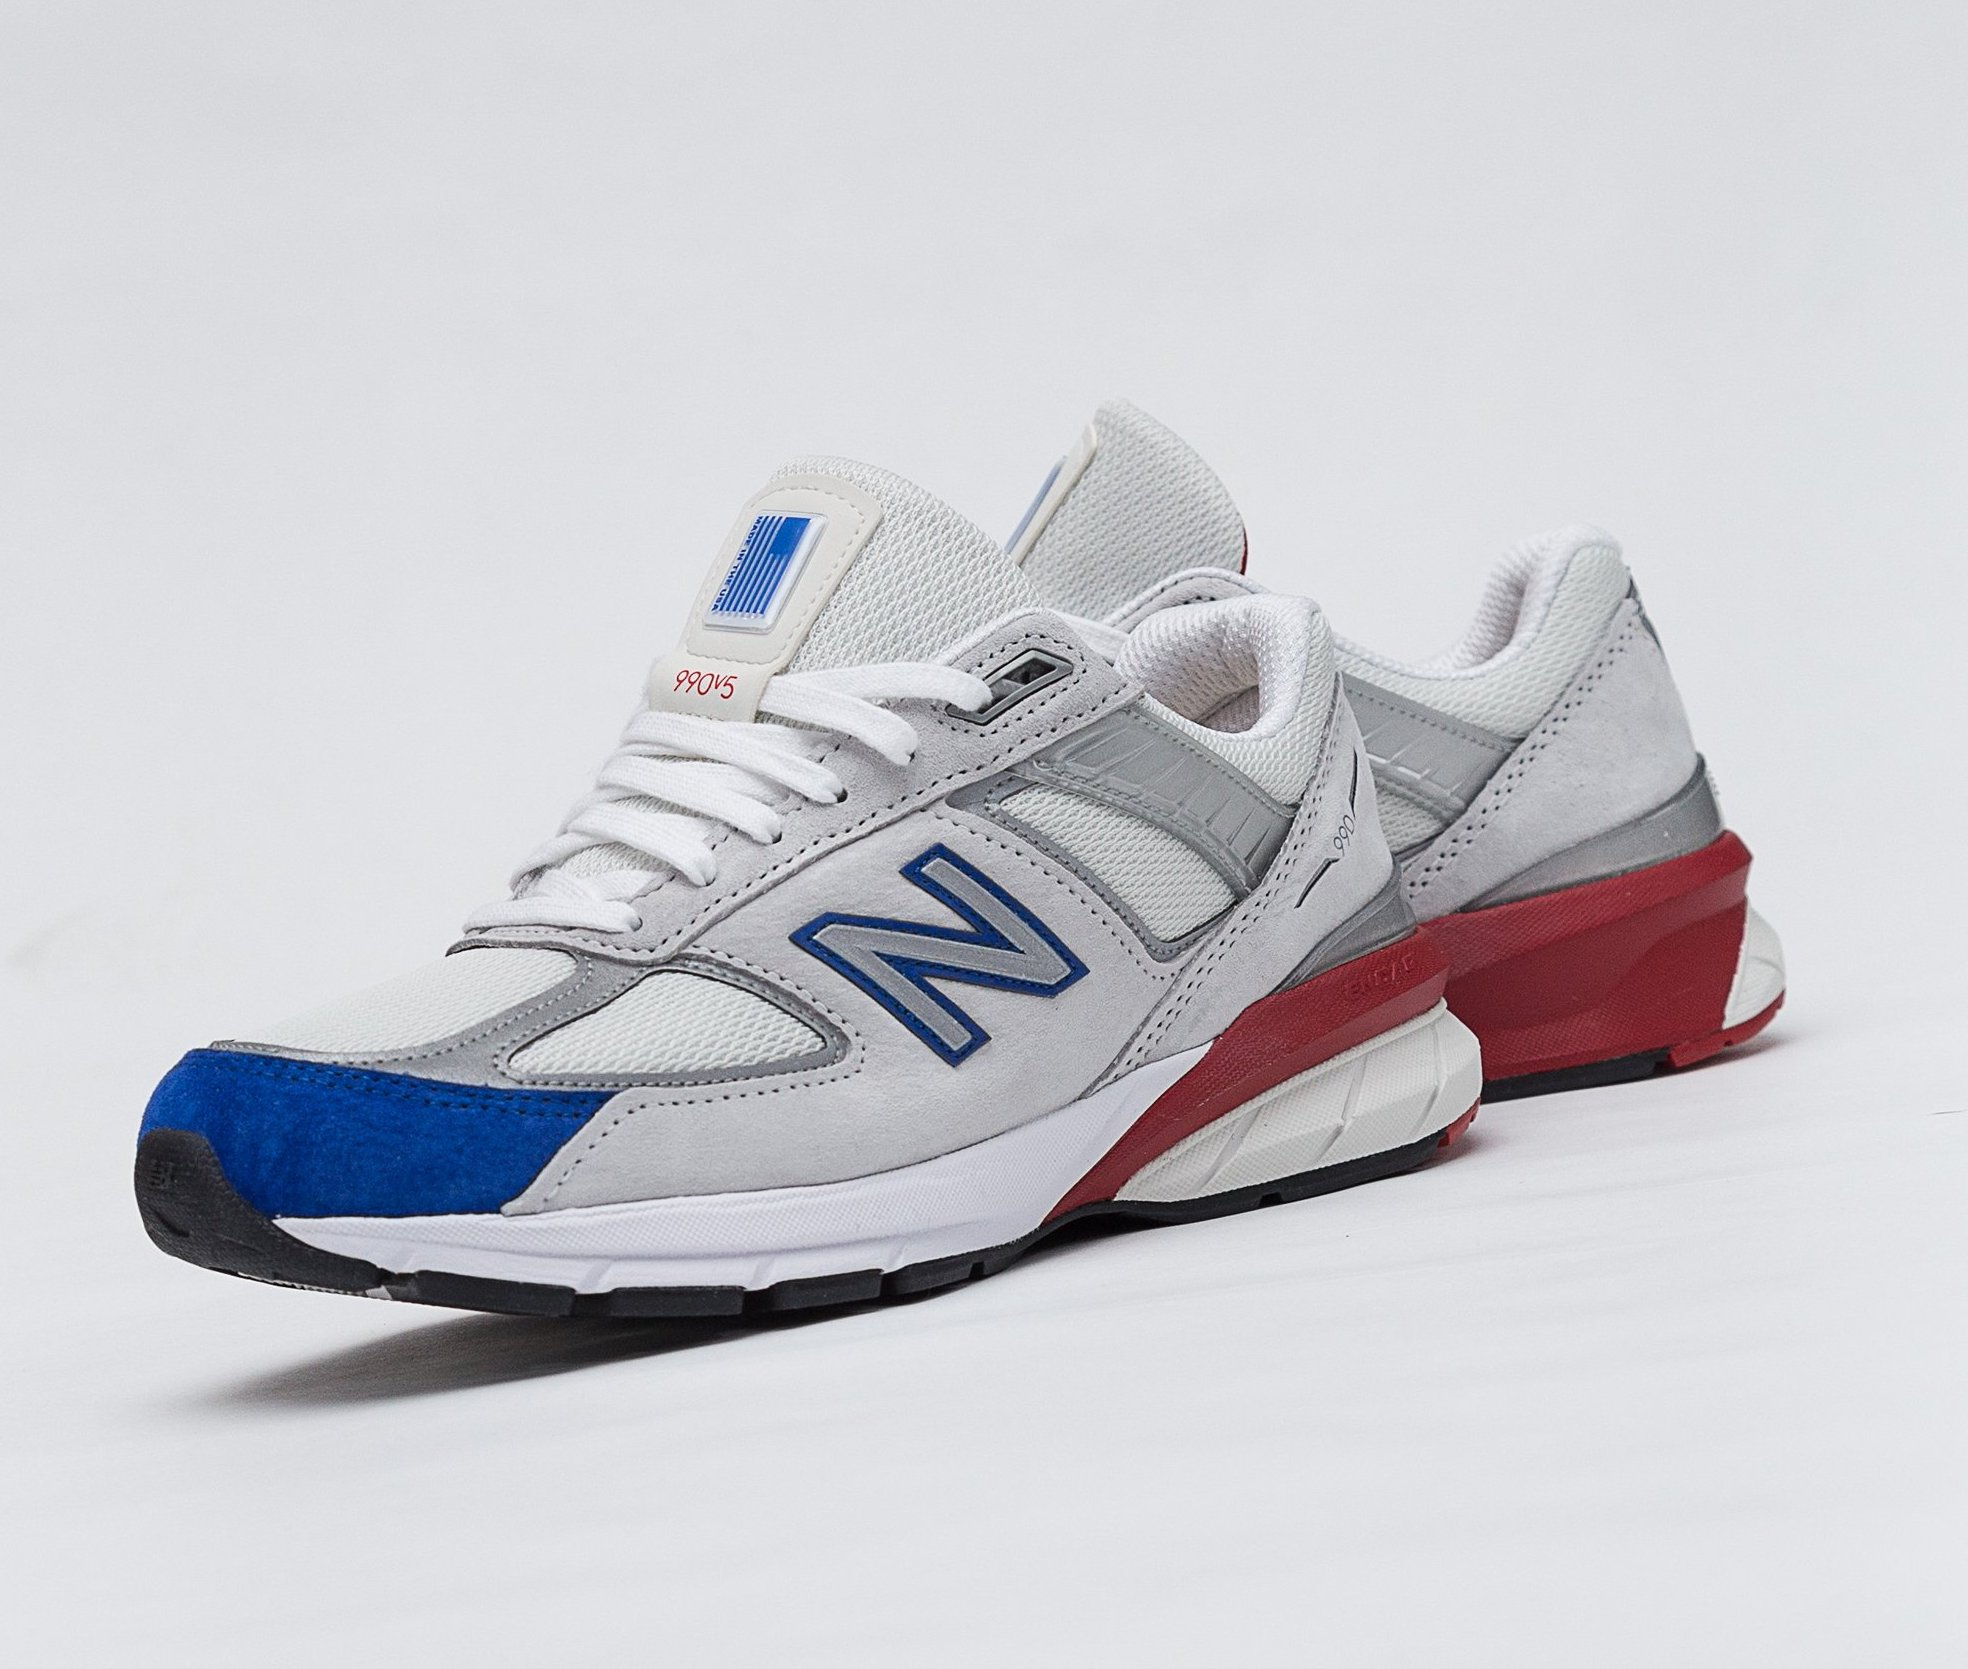 79762fbb30d16 On Sale: New Balance 990v5